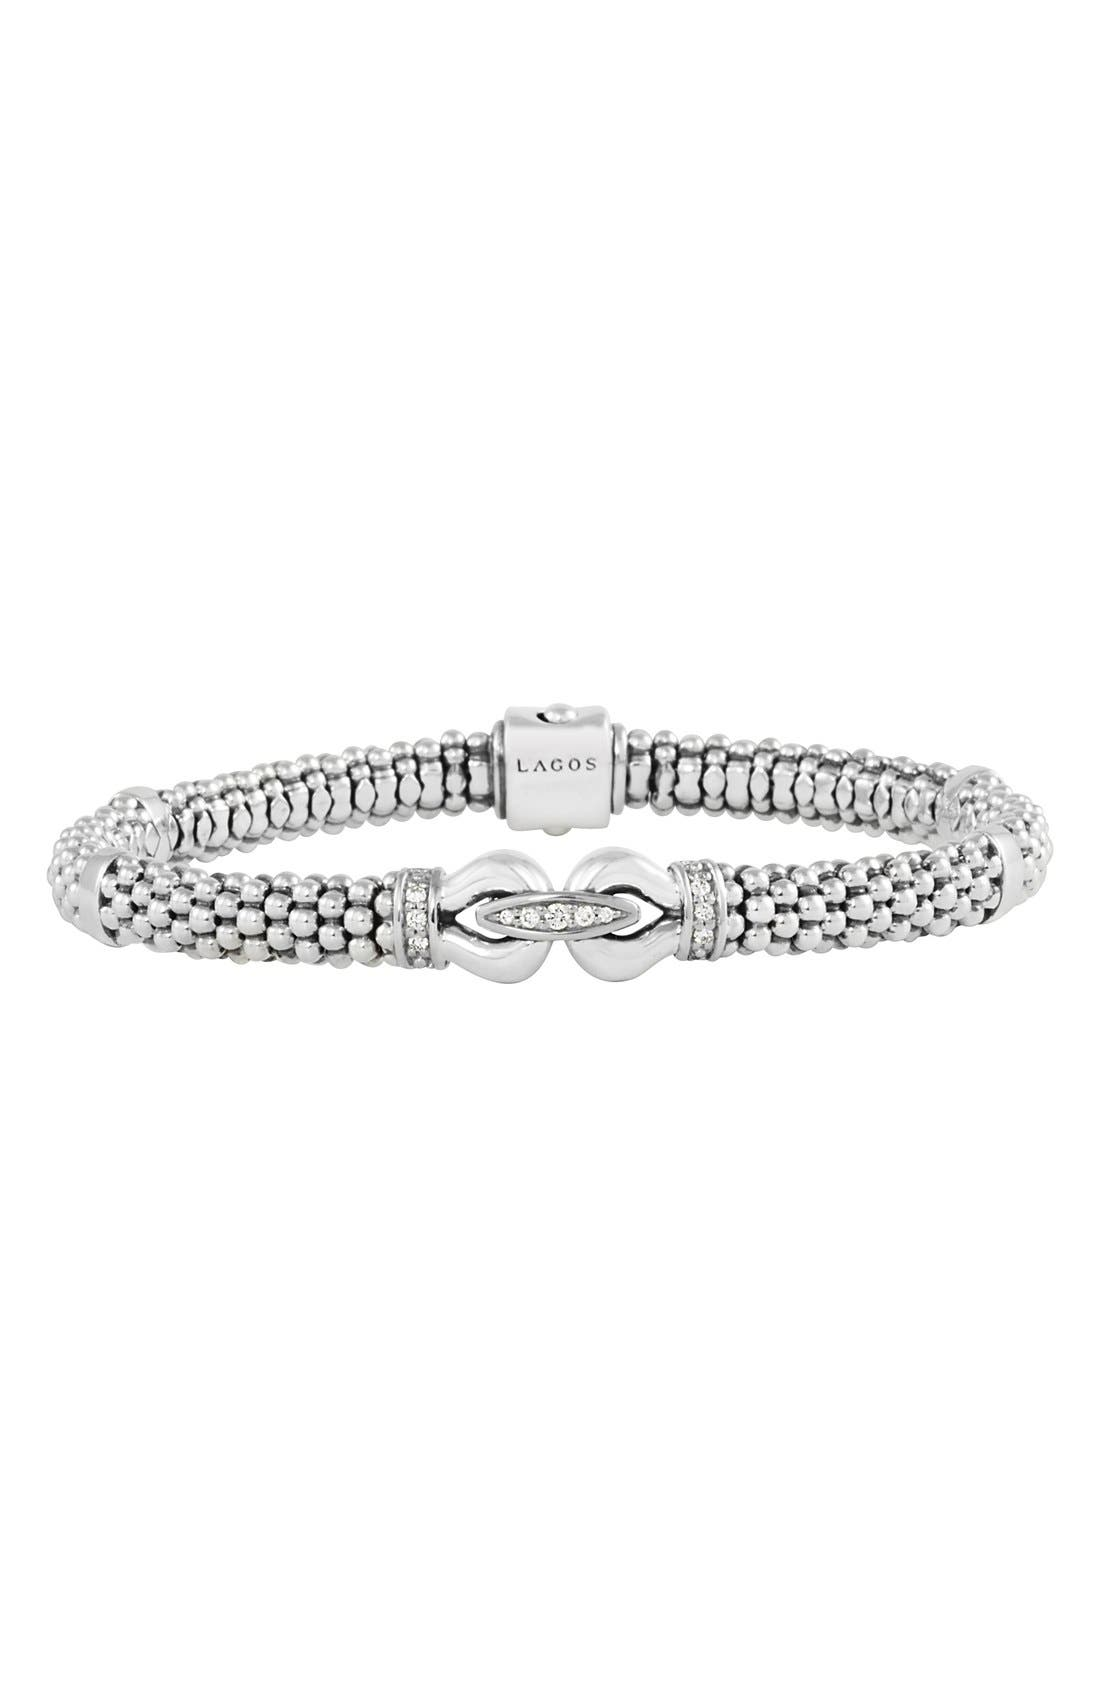 'Derby' Diamond Buckle Rope Bracelet,                             Main thumbnail 1, color,                             STERLING SILVER